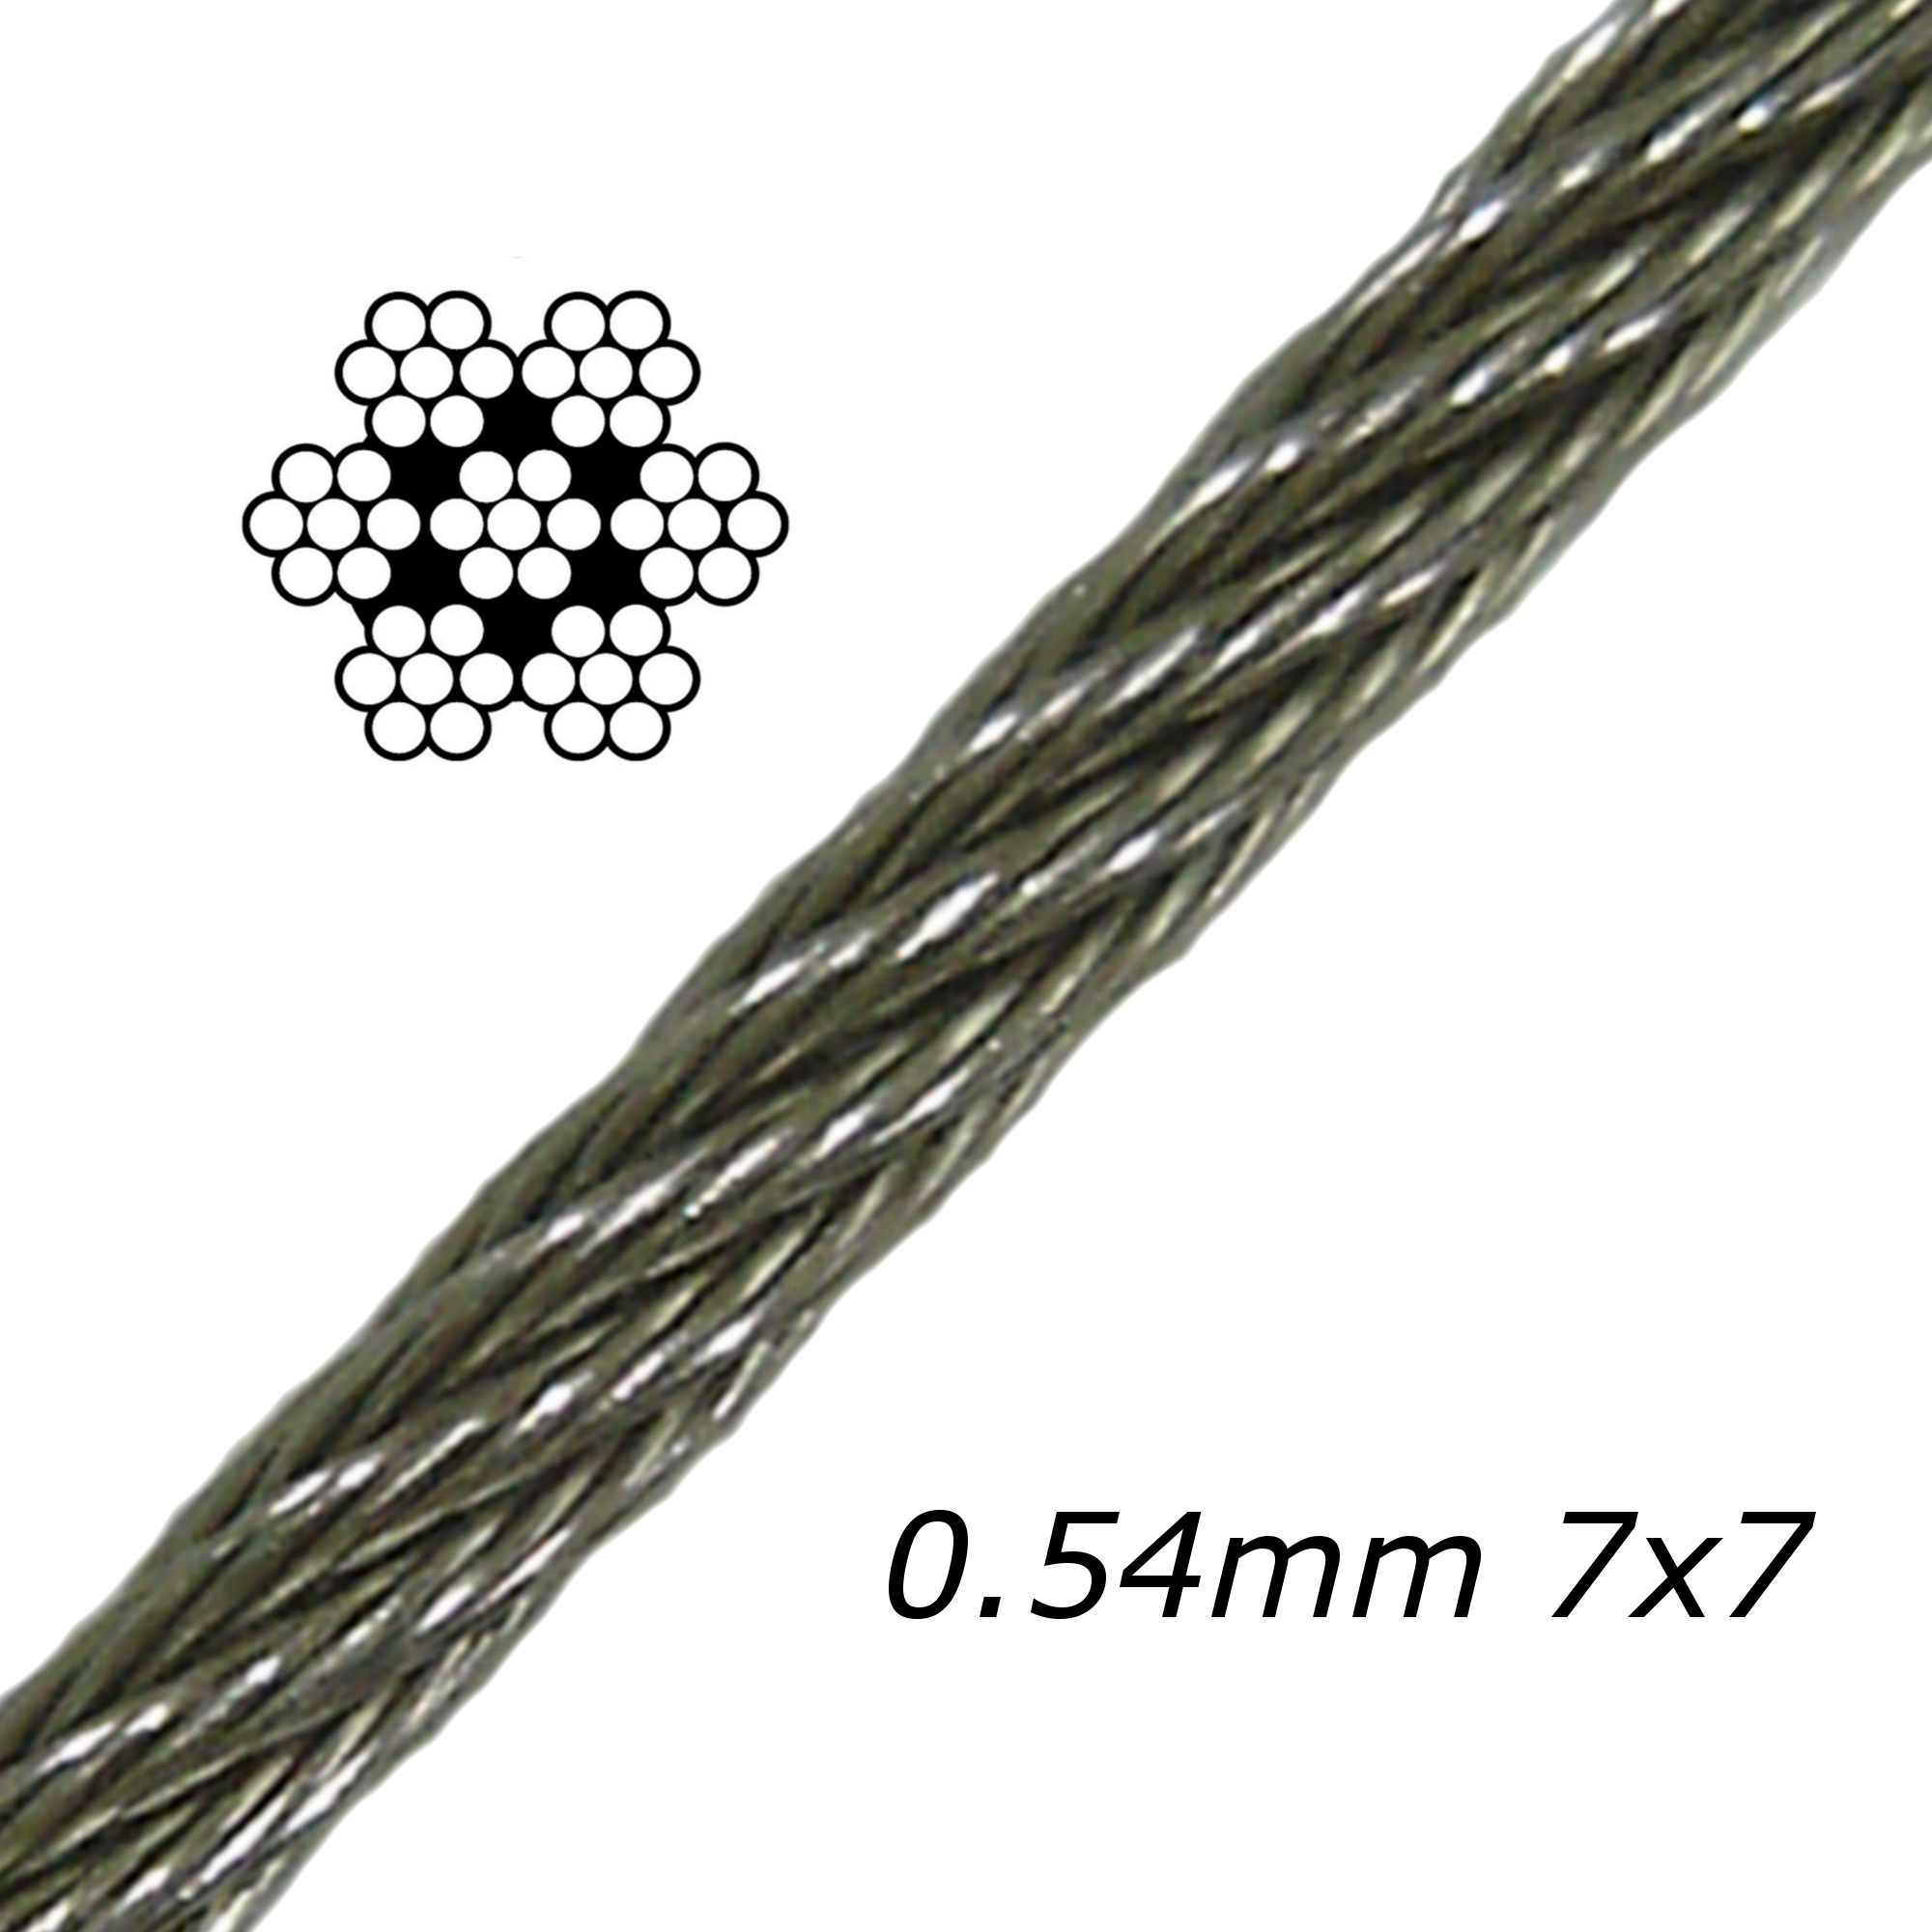 0.54mm Stainless Steel Cable 7x7